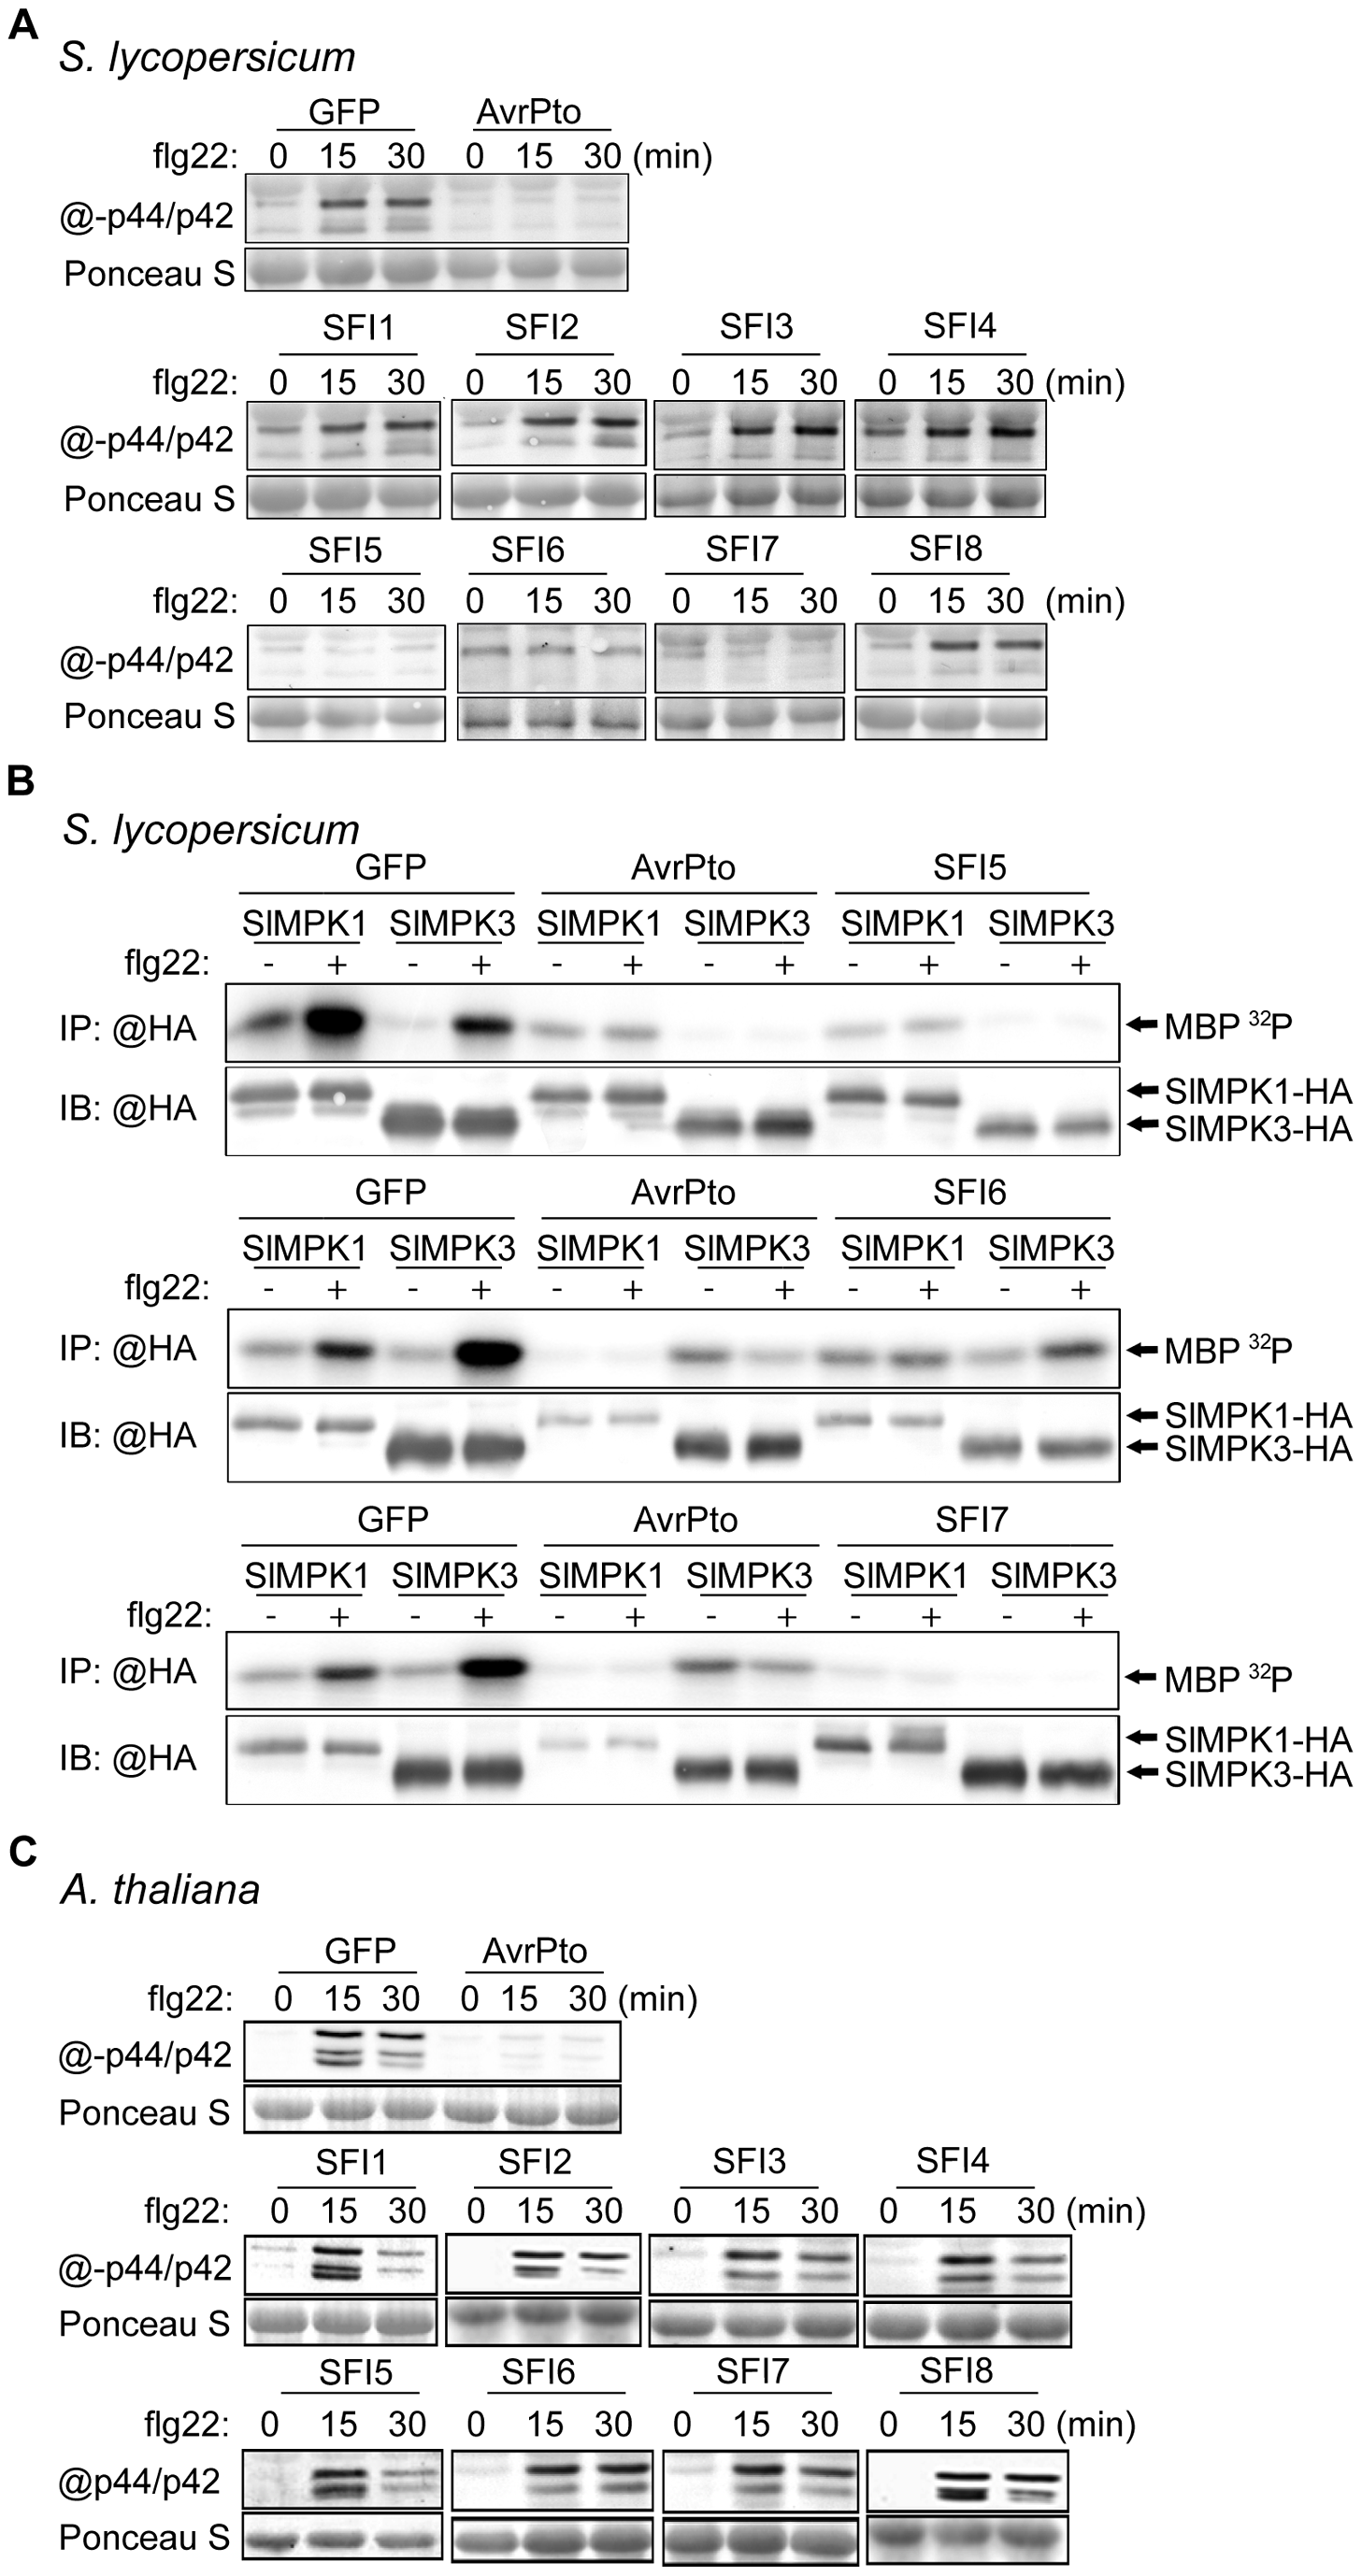 MAP kinase activation upon flg22 treatment in protoplasts expressing SFI effector genes.